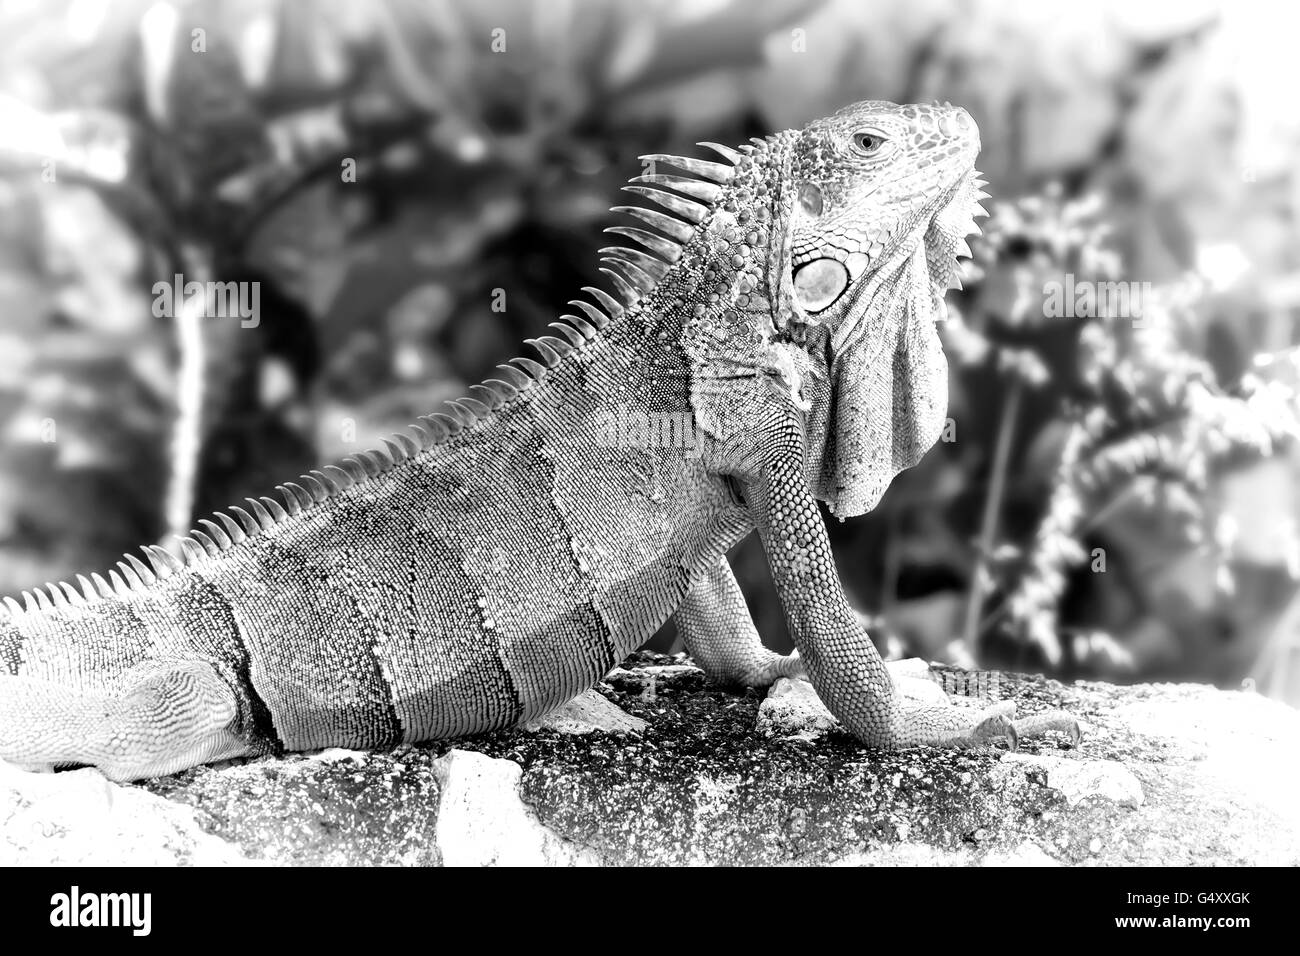 Digitally created pencil sketch of a large bearded lizard - Stock Image